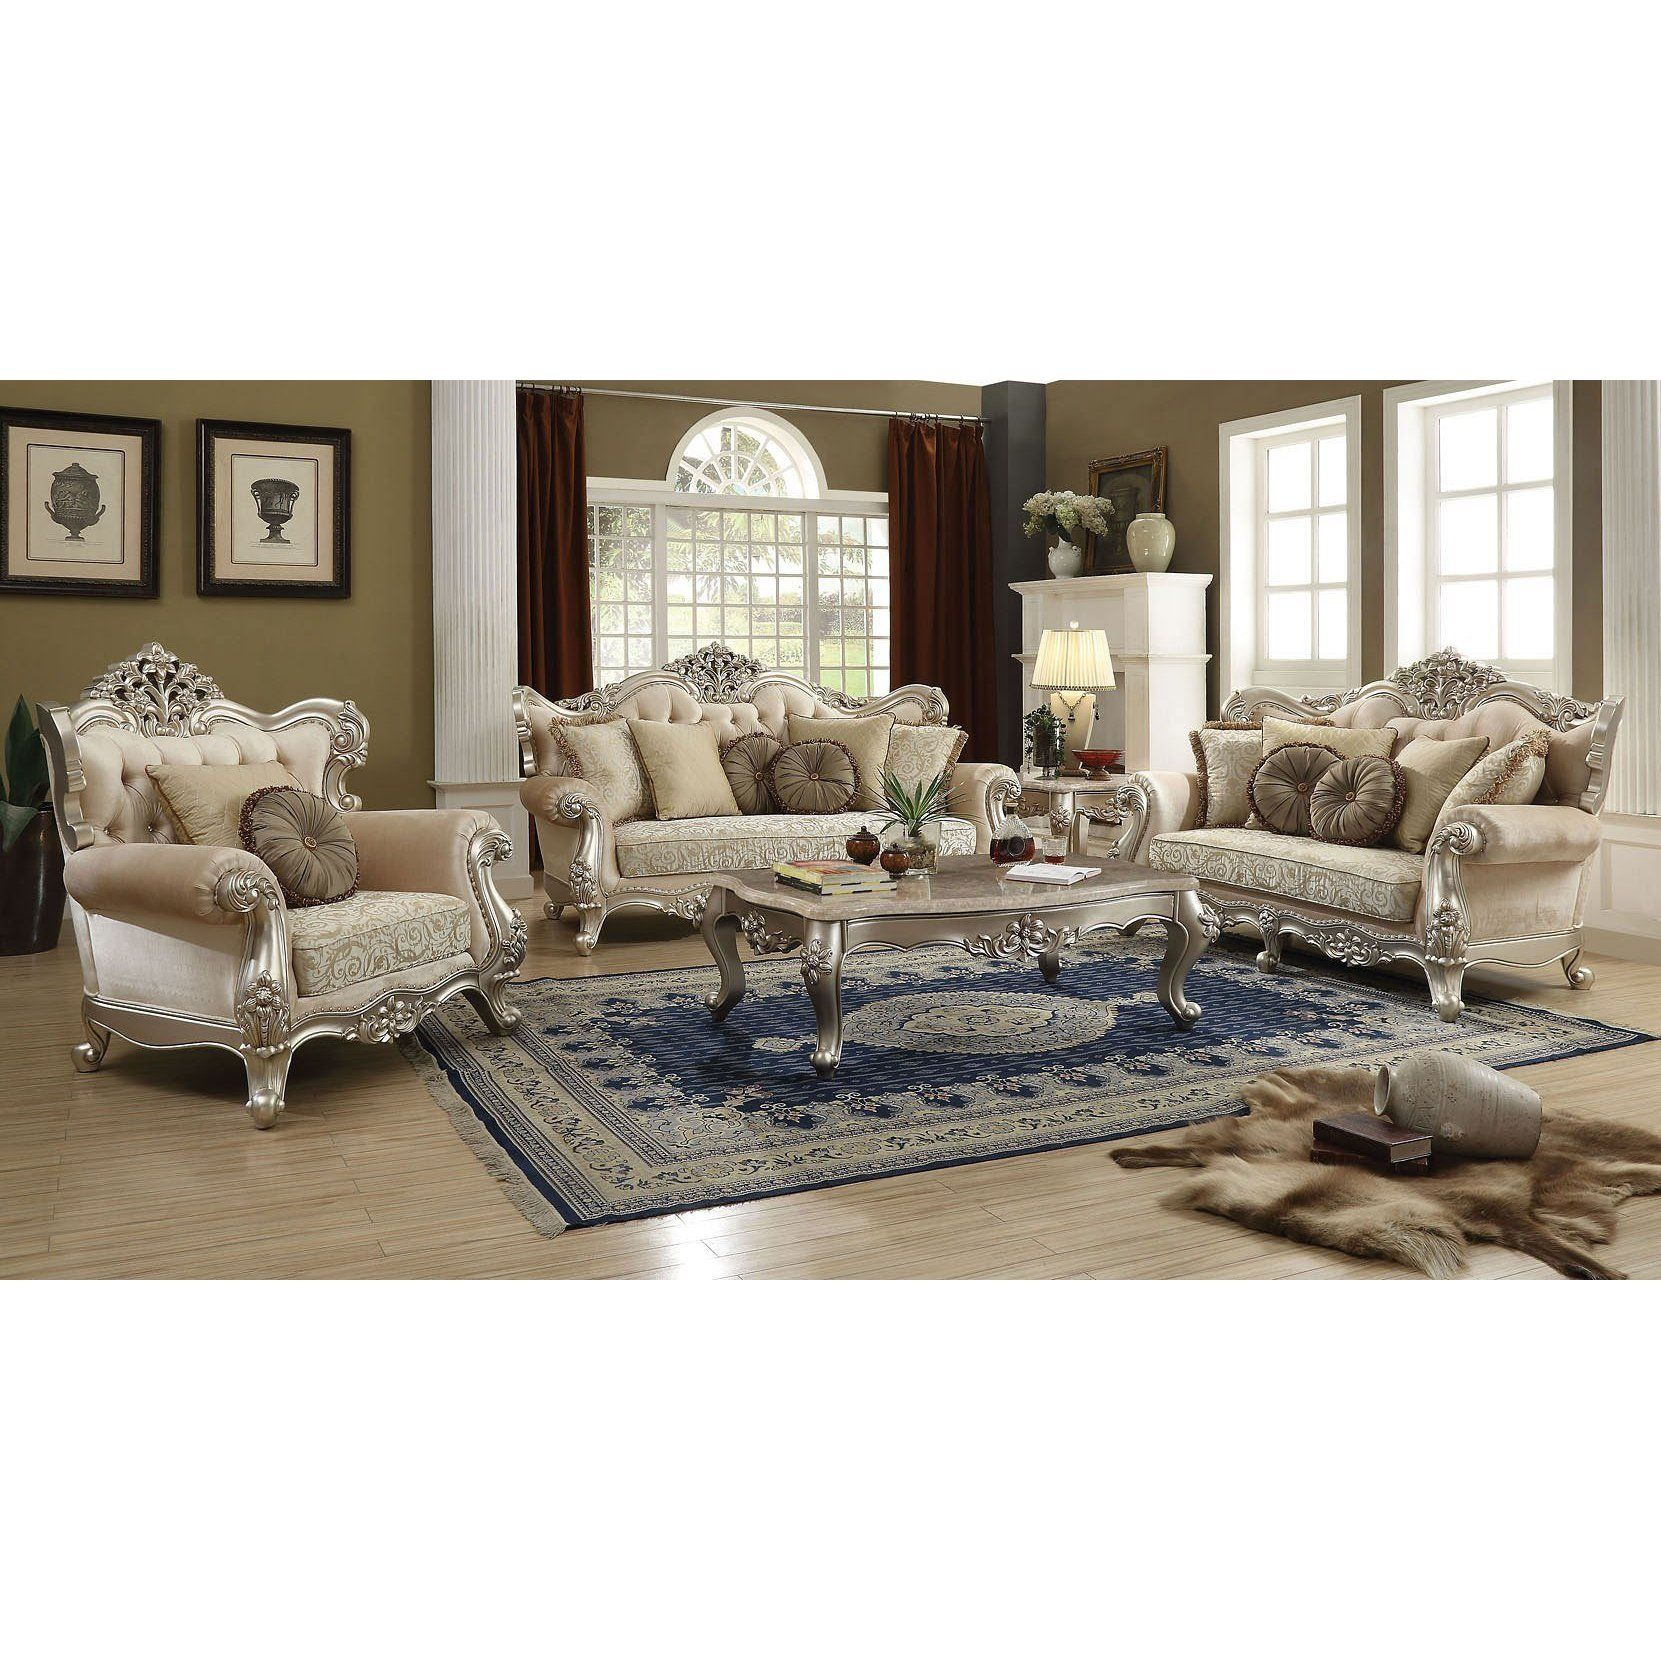 Best Acme Bently In Fabric Finish 5 Pc Living Room Set Marble 640 x 480